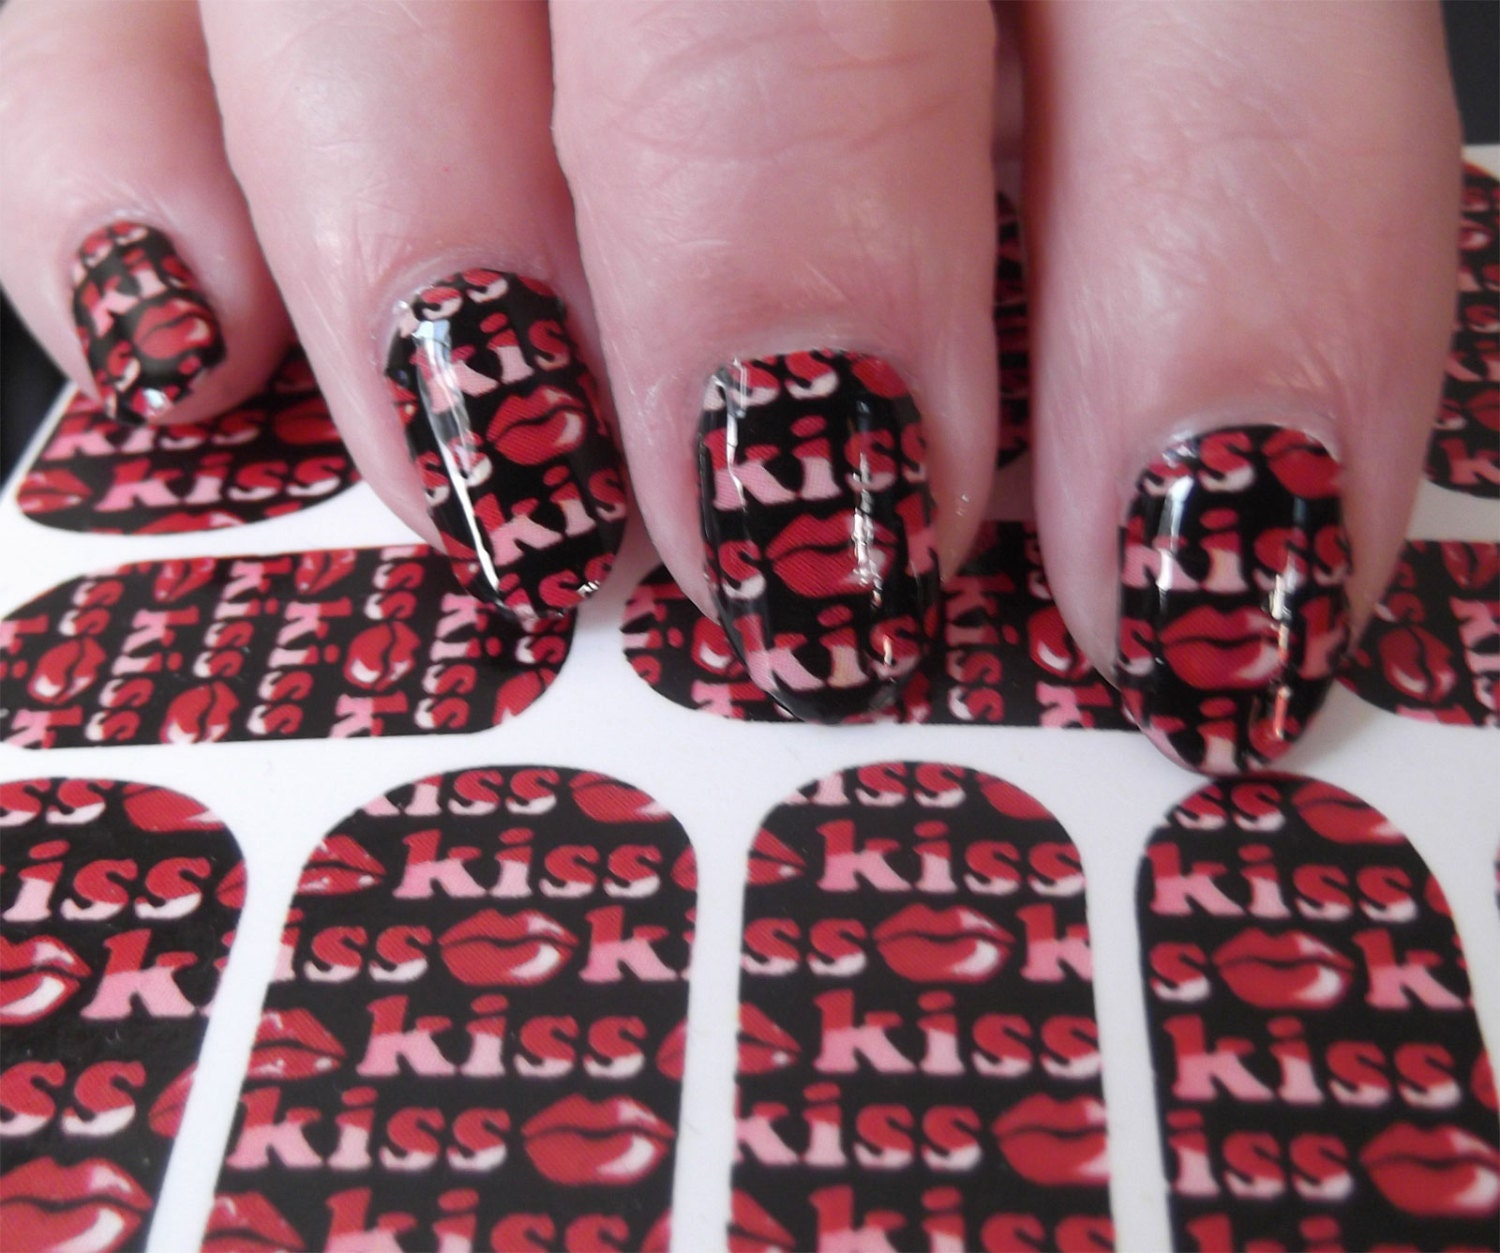 ON SALE 18 KISS Me Lips Nail Art Packs (Kwf) Full Nail Wrap Red Lips ...